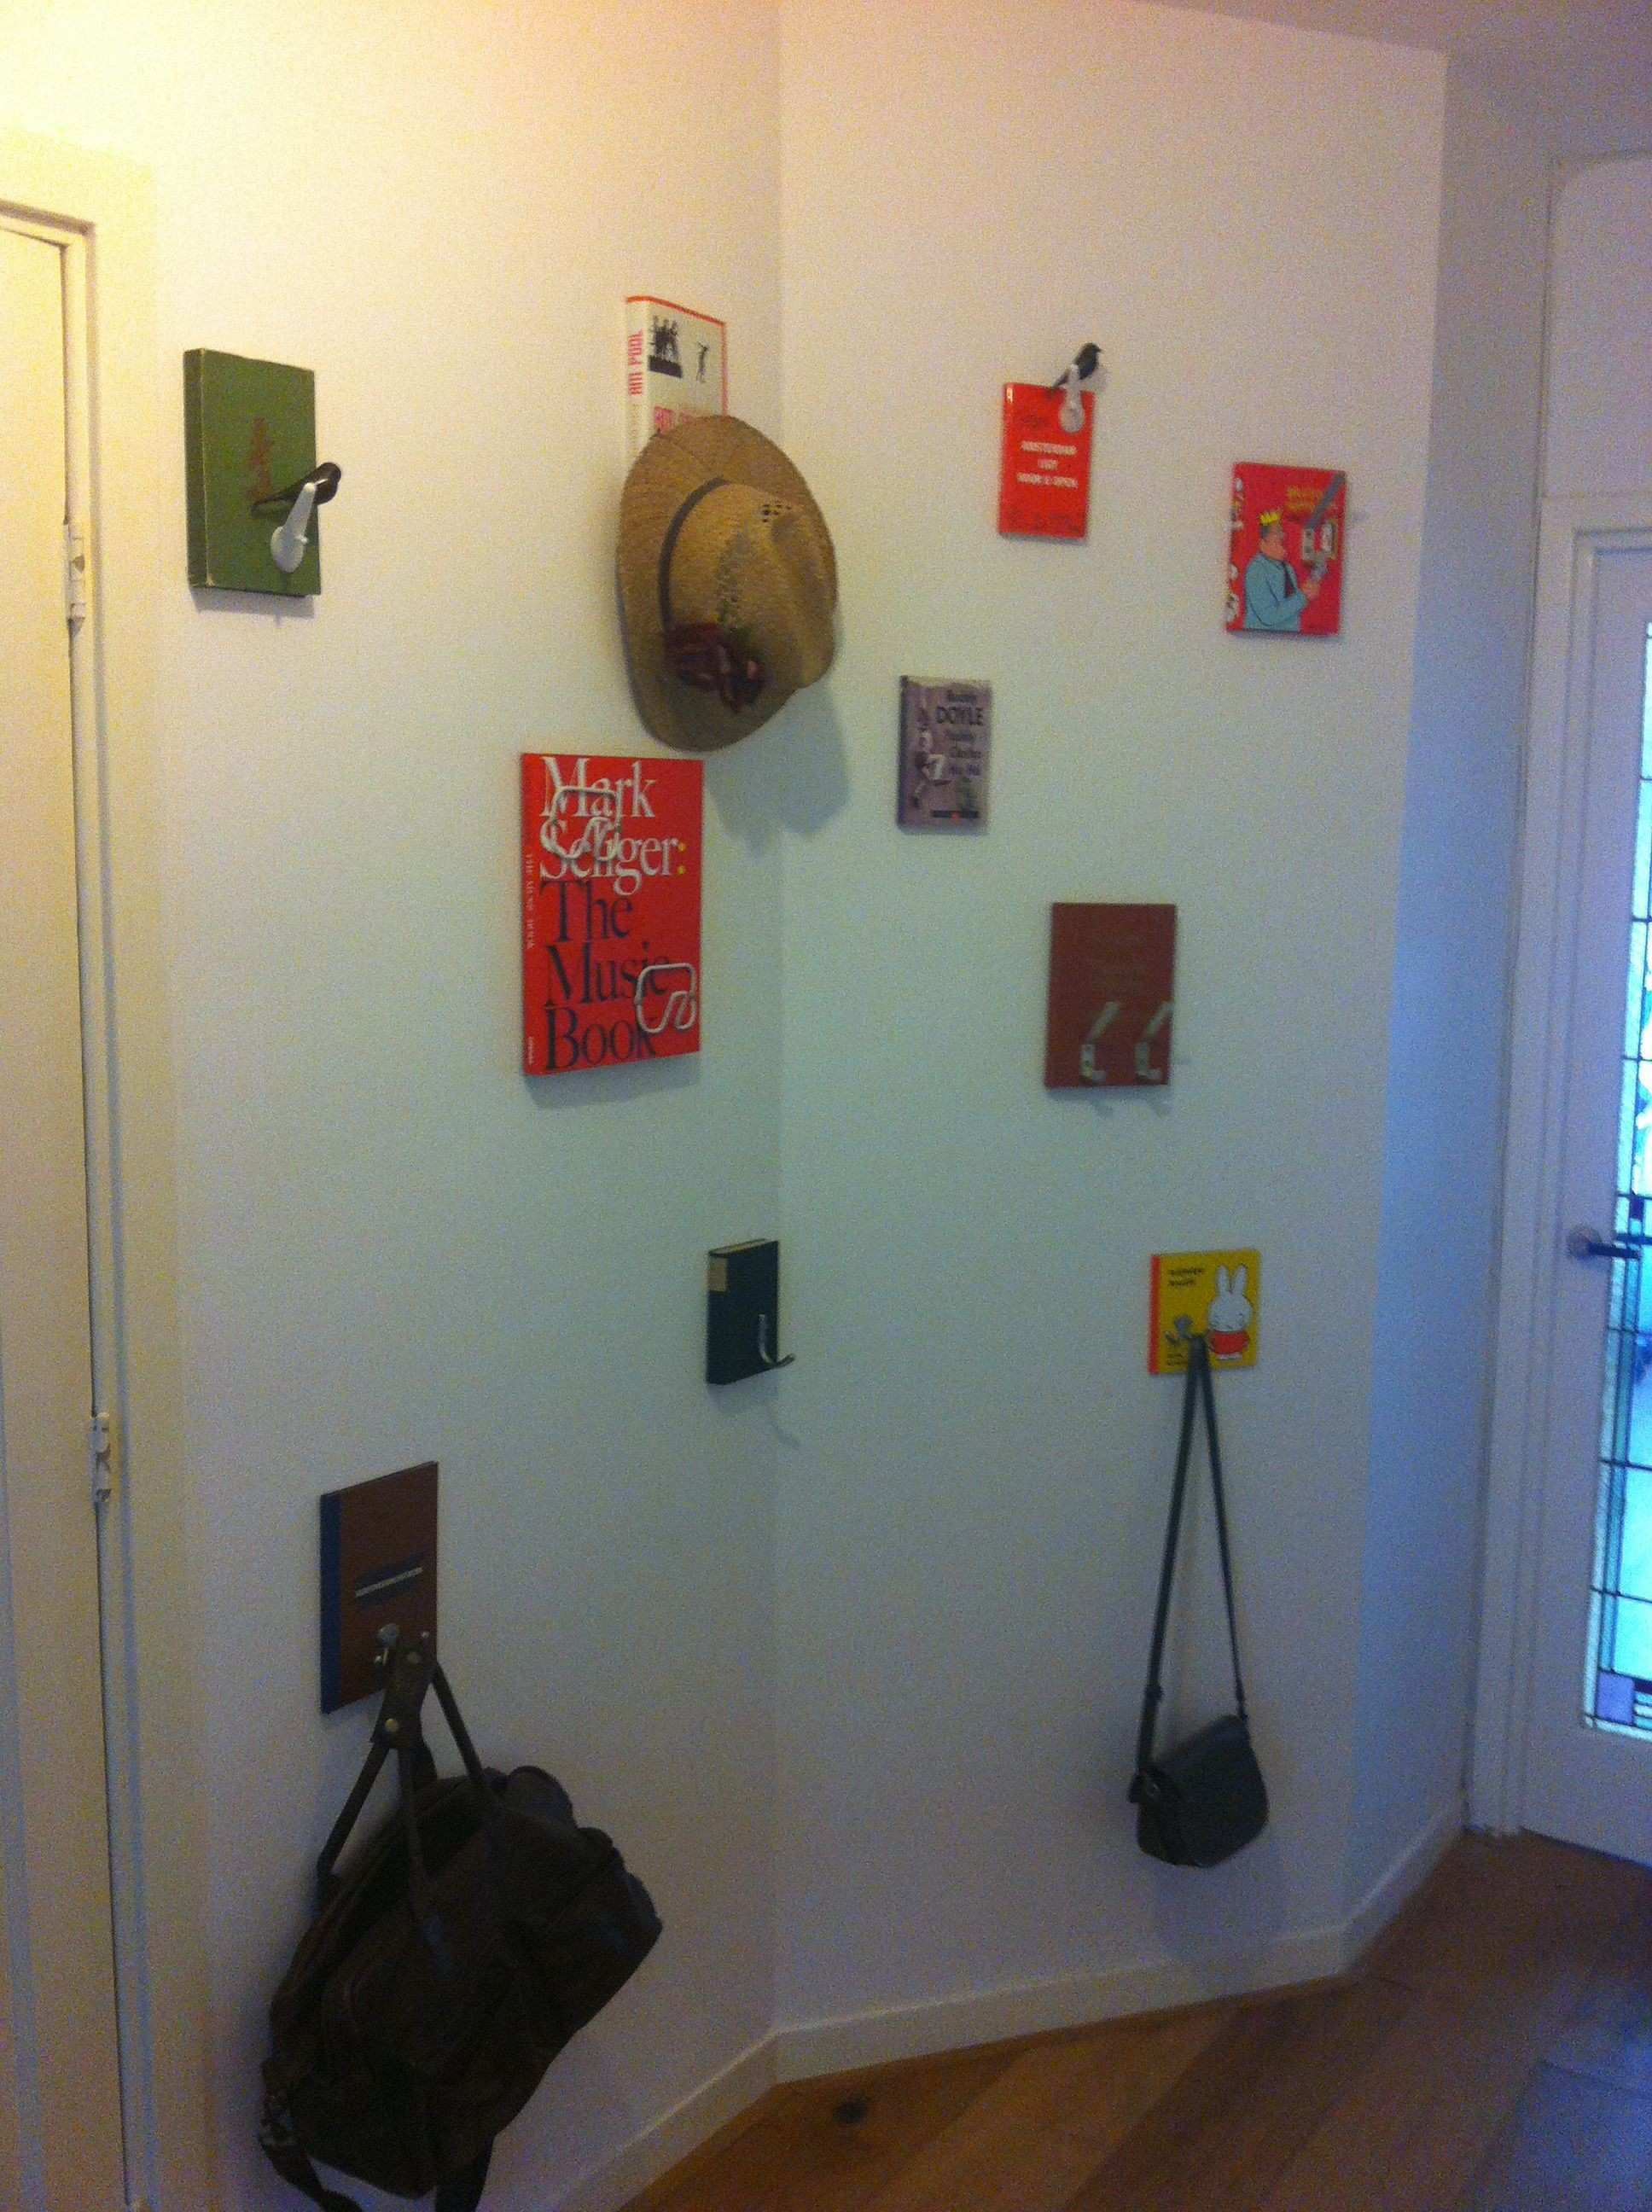 Books with hooks to hang your coat on Different hooks on different